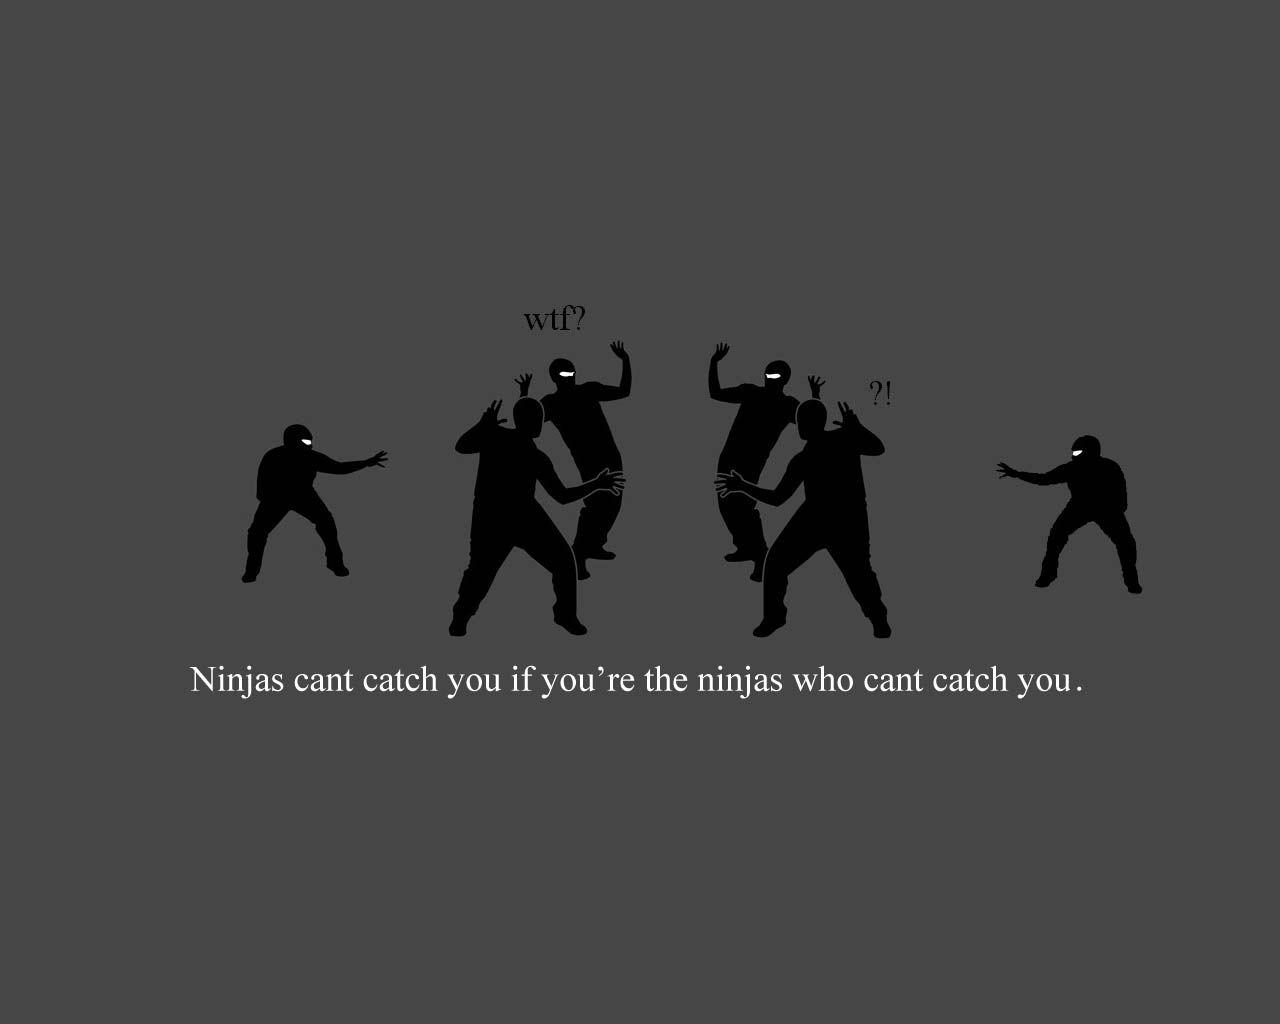 3840x1080 Hd Wallpapers Sad Quote Image 44351 Ninjas Can T Catch You If Know Your